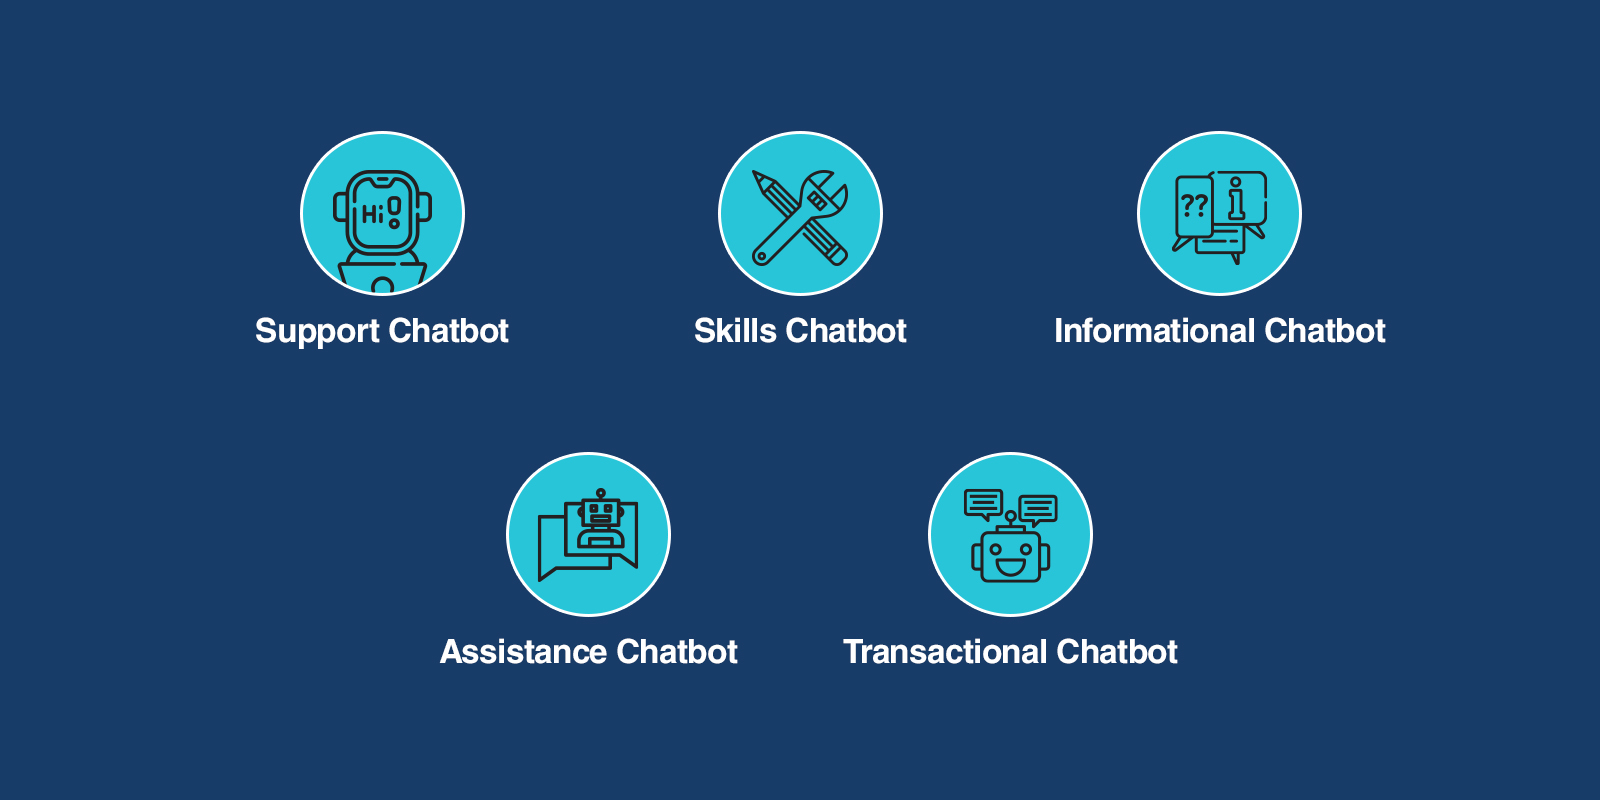 chatbot tasks and functions